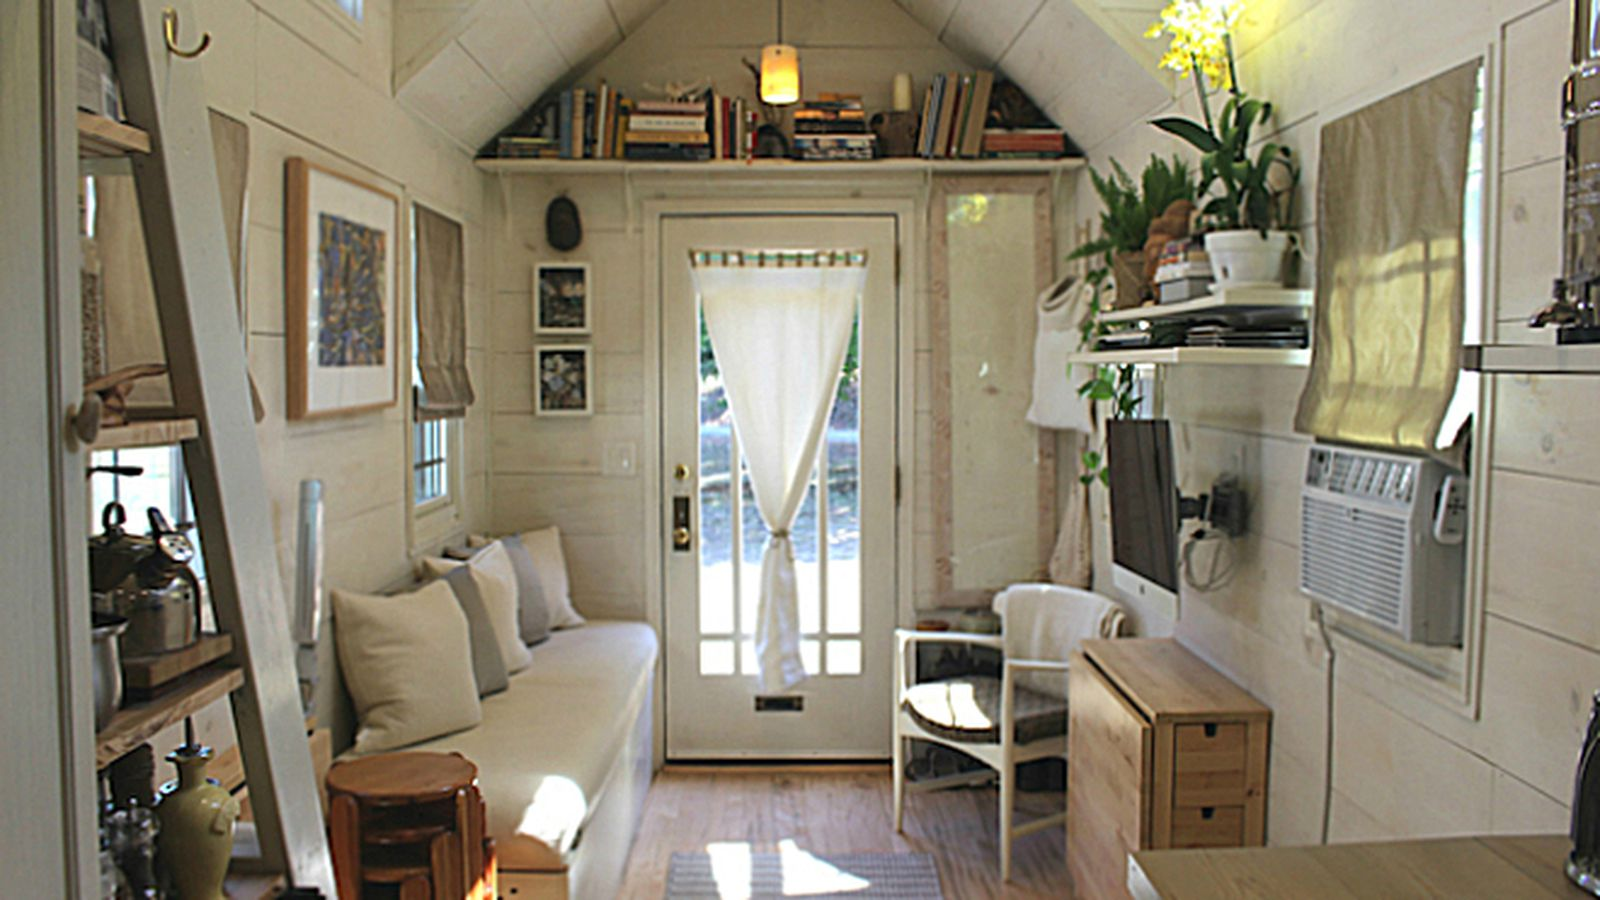 Impressive Tiny House Built For Under 30k Fits Family Of